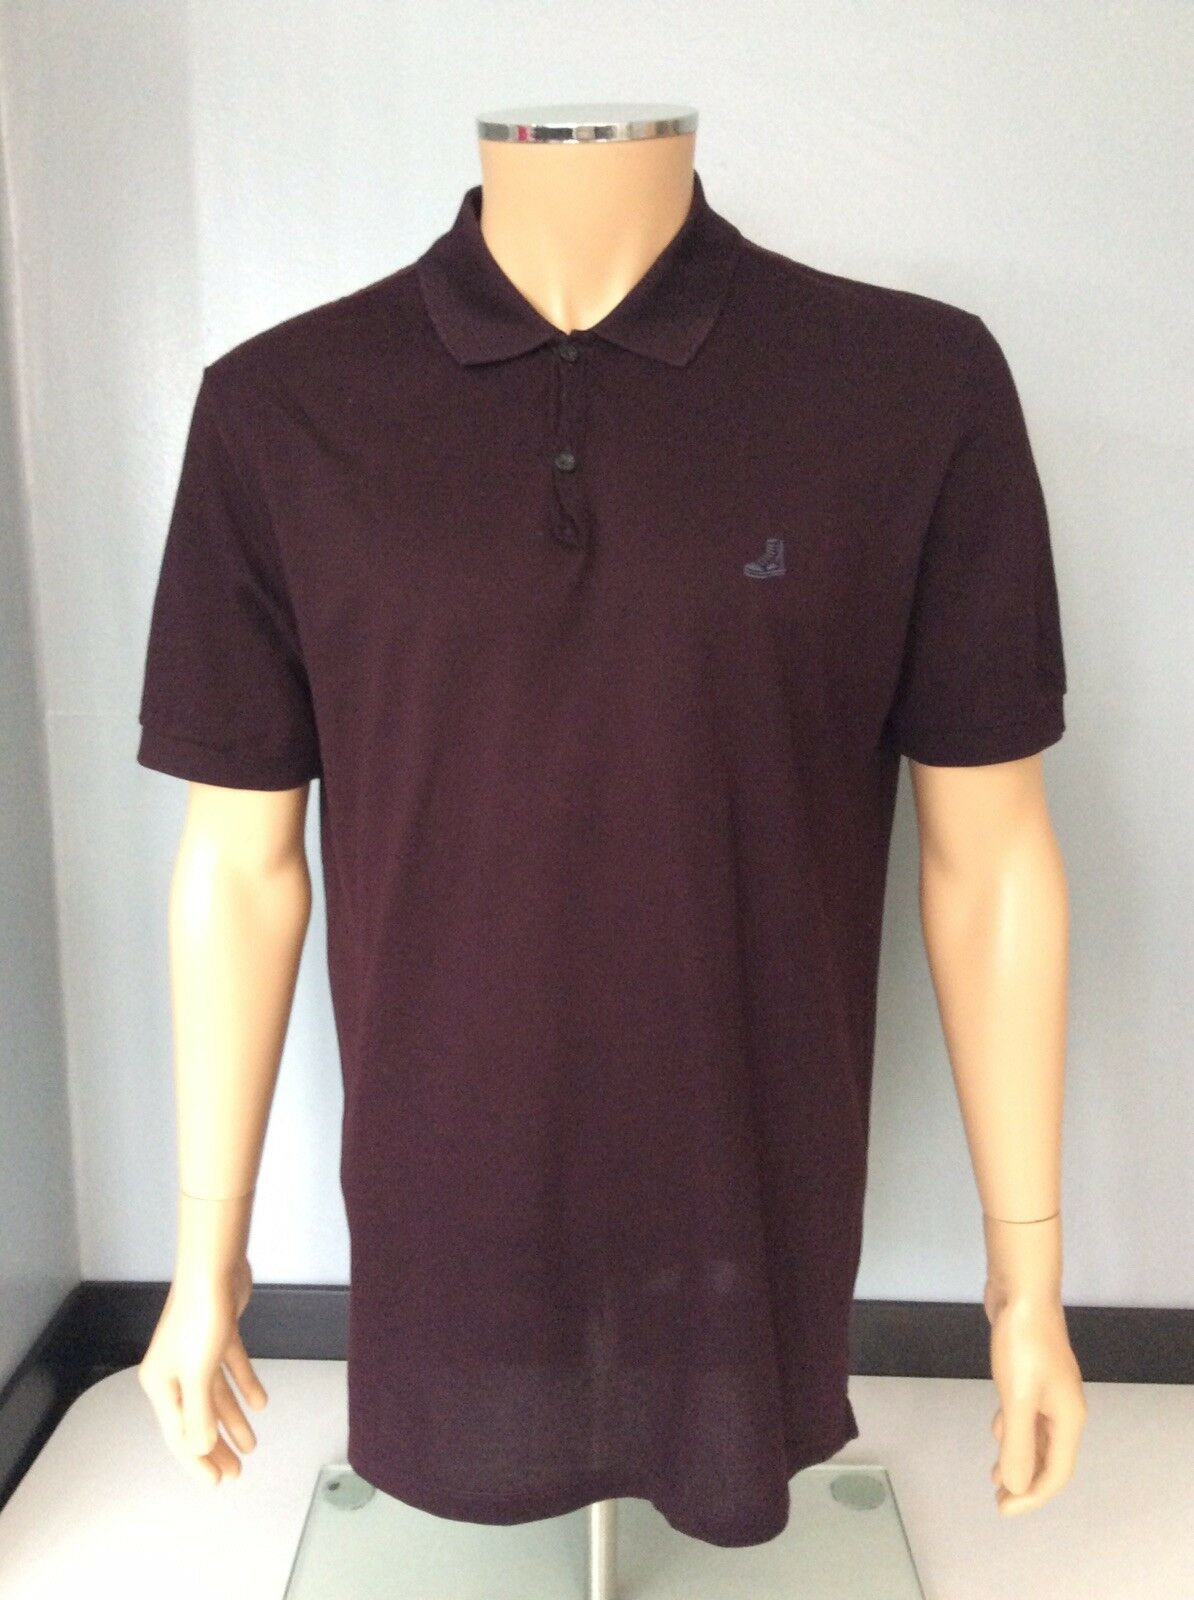 Lanvin Mens Polo T Shirt, Size Xxl, Burgundy, Red, Immaculate